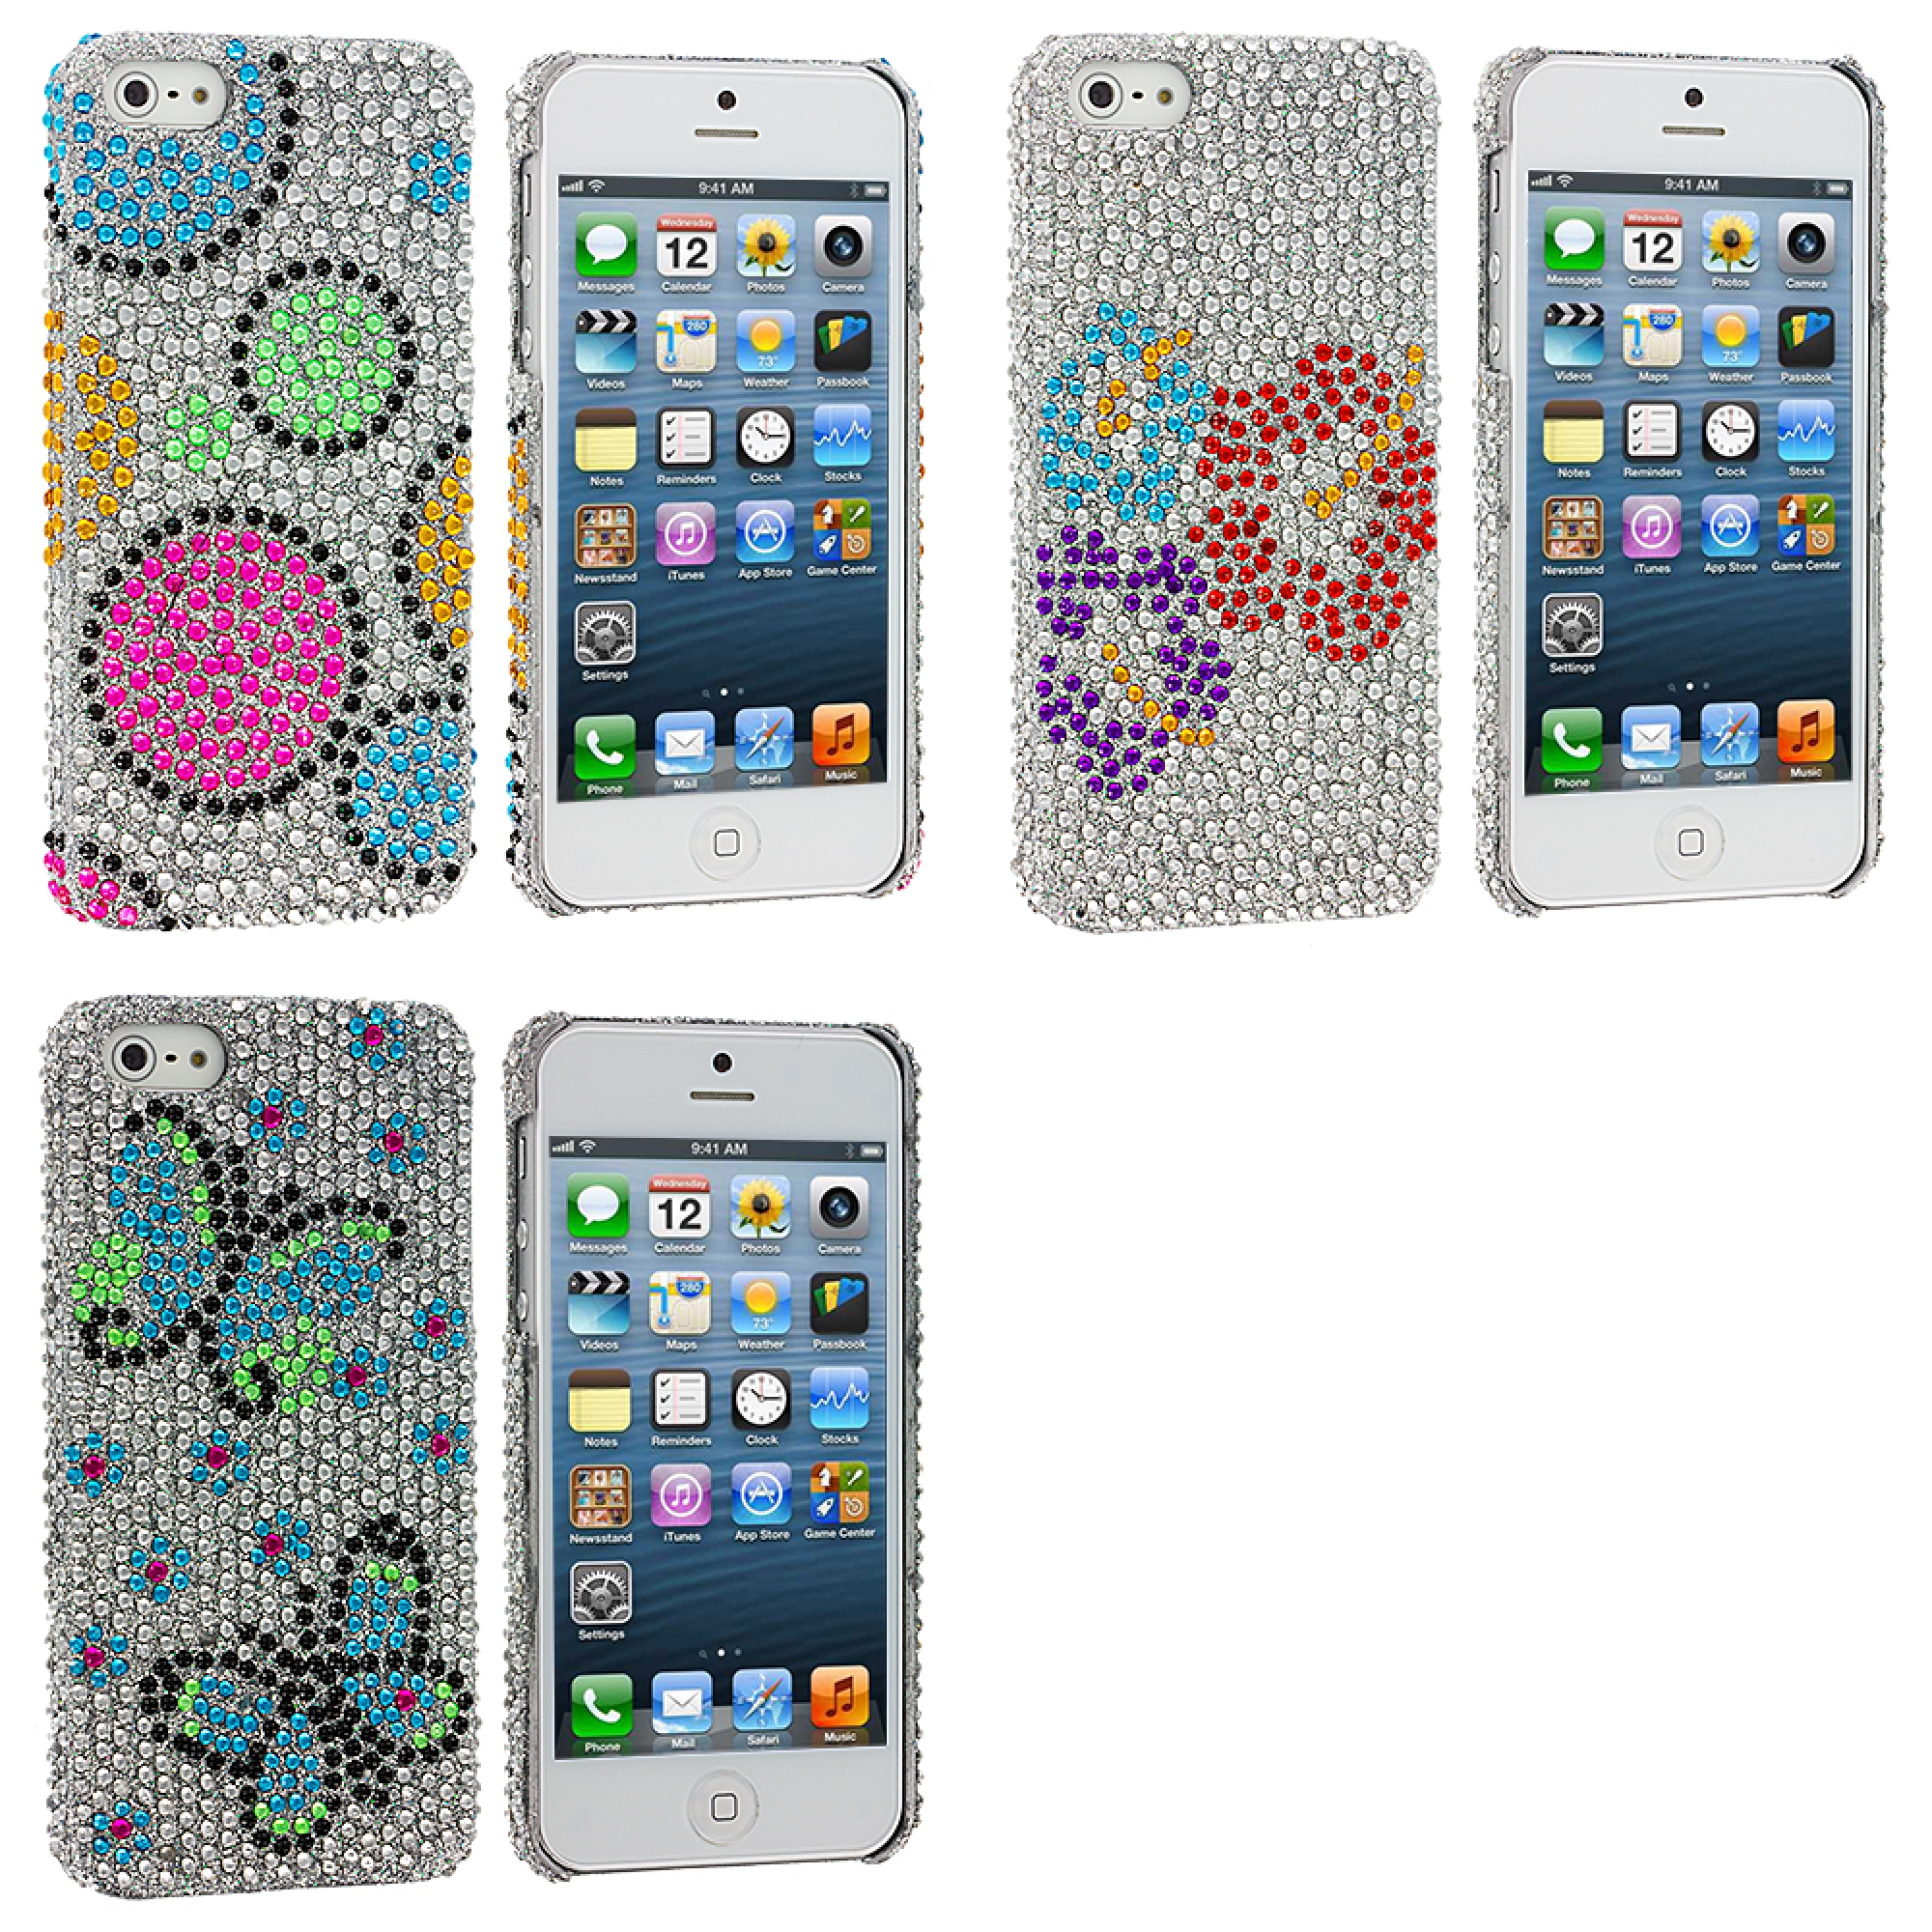 Apple iPhone 5/5S/SE Combo Pack : Colorful Hubble Bubble Bling Rhinestone Case Cover